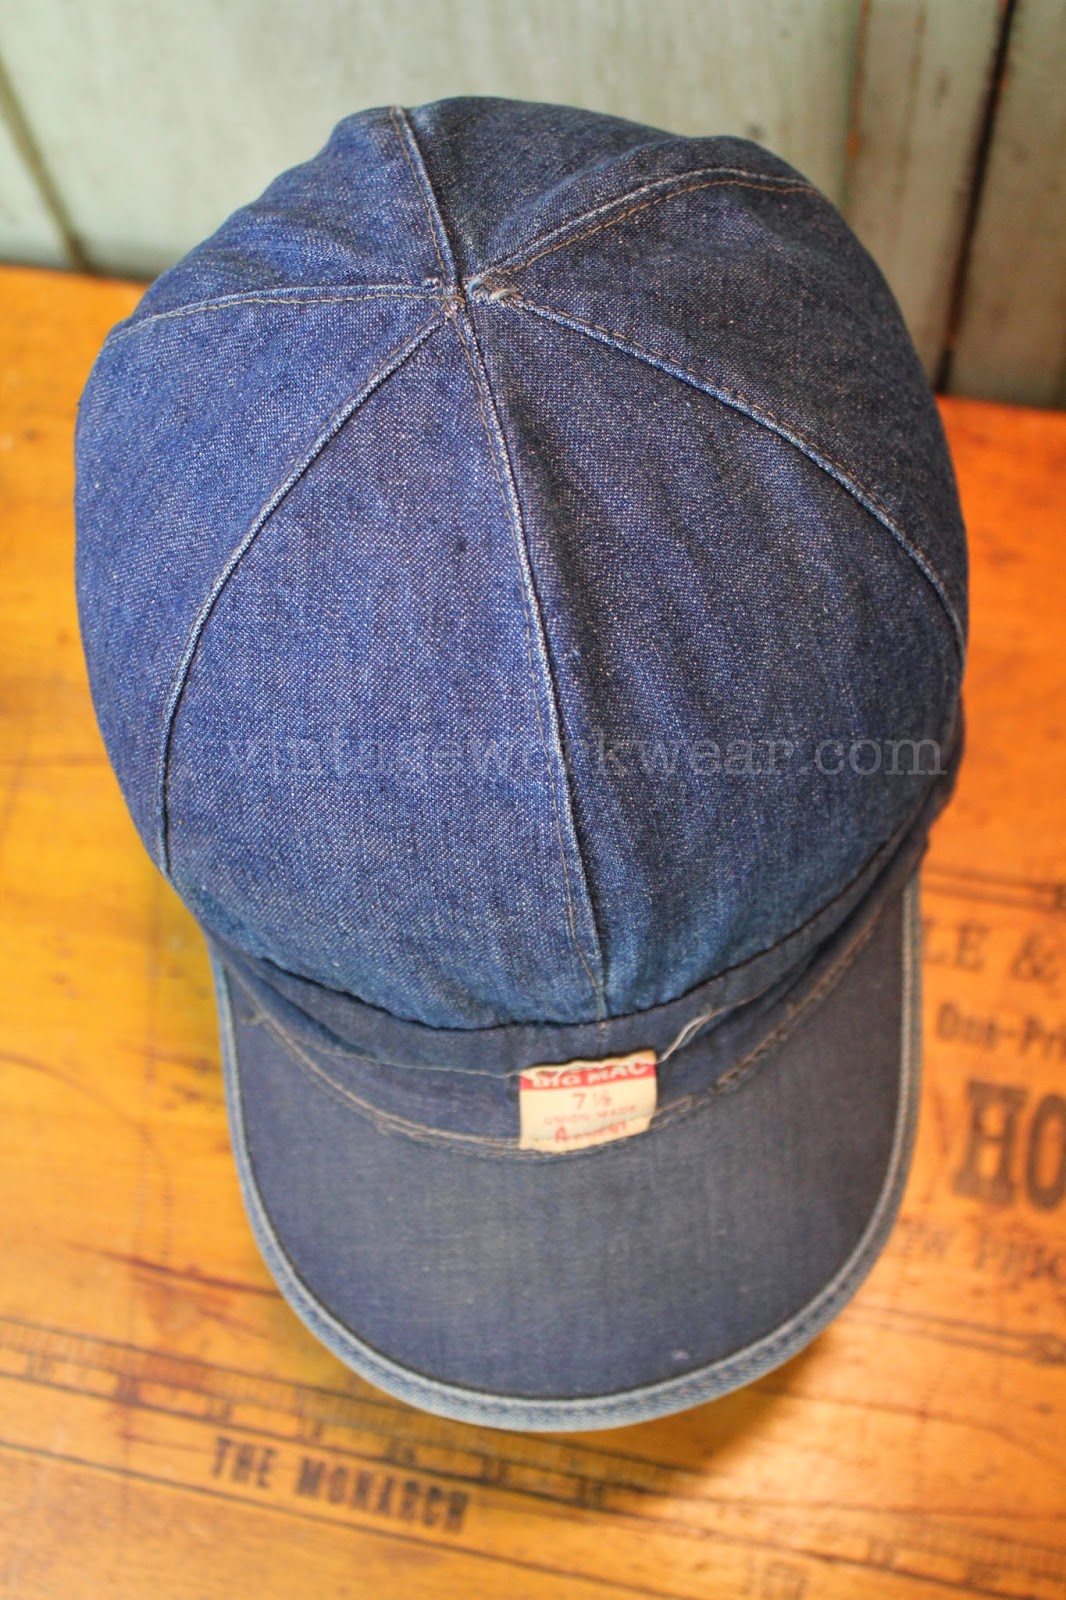 Dating union hat labels